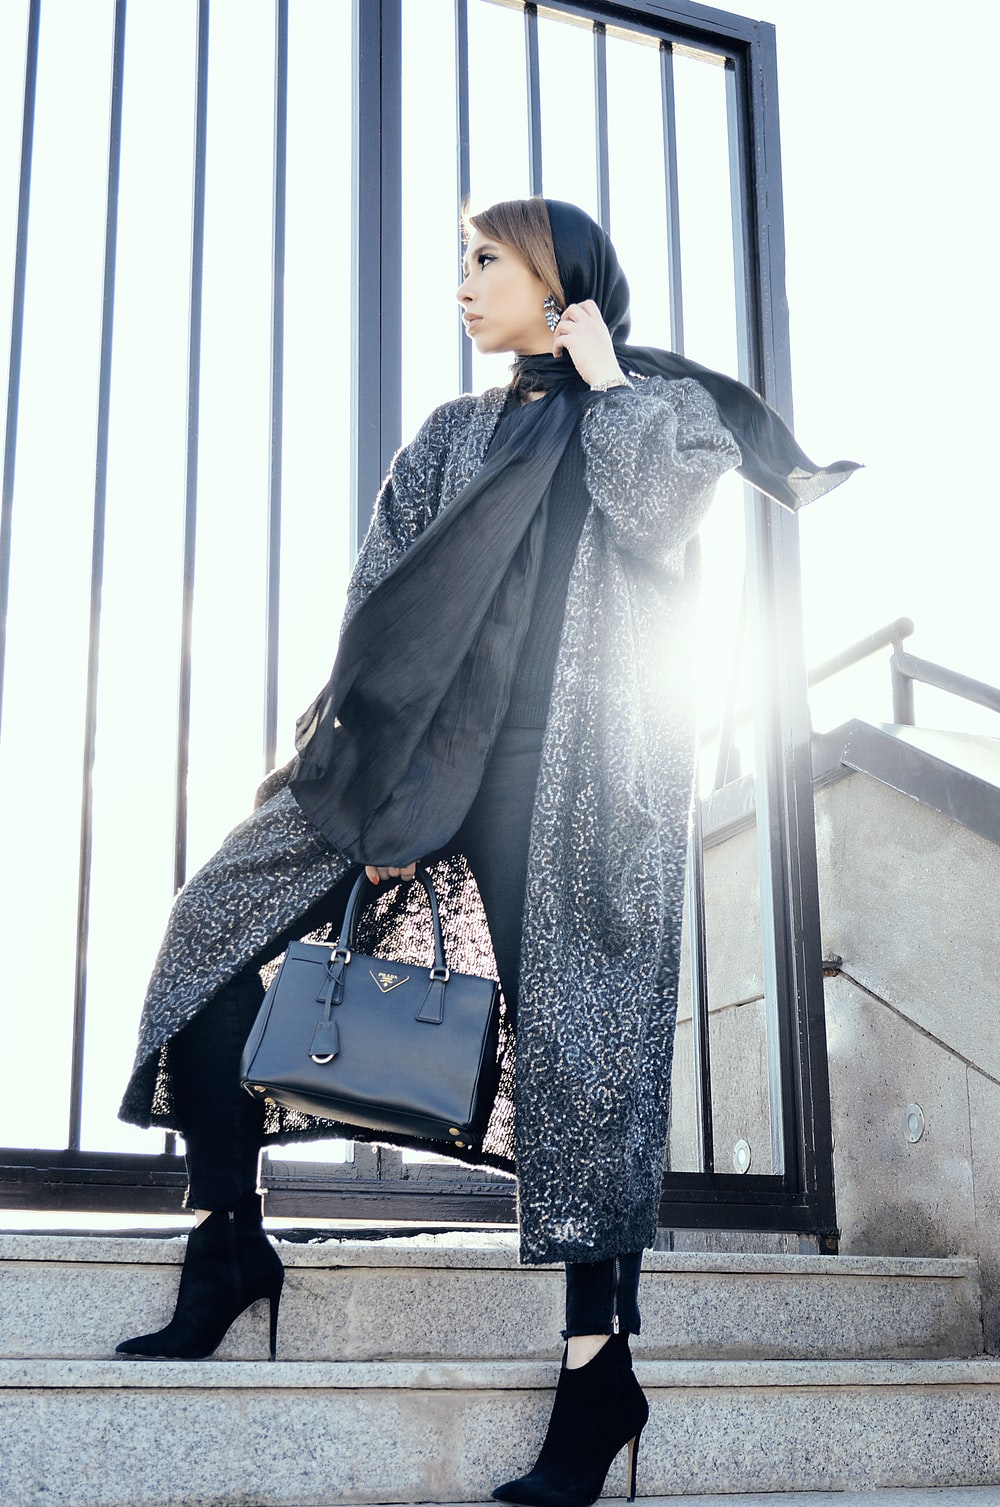 woman in gray coat holding black handbag standing on gray stairs during daytime